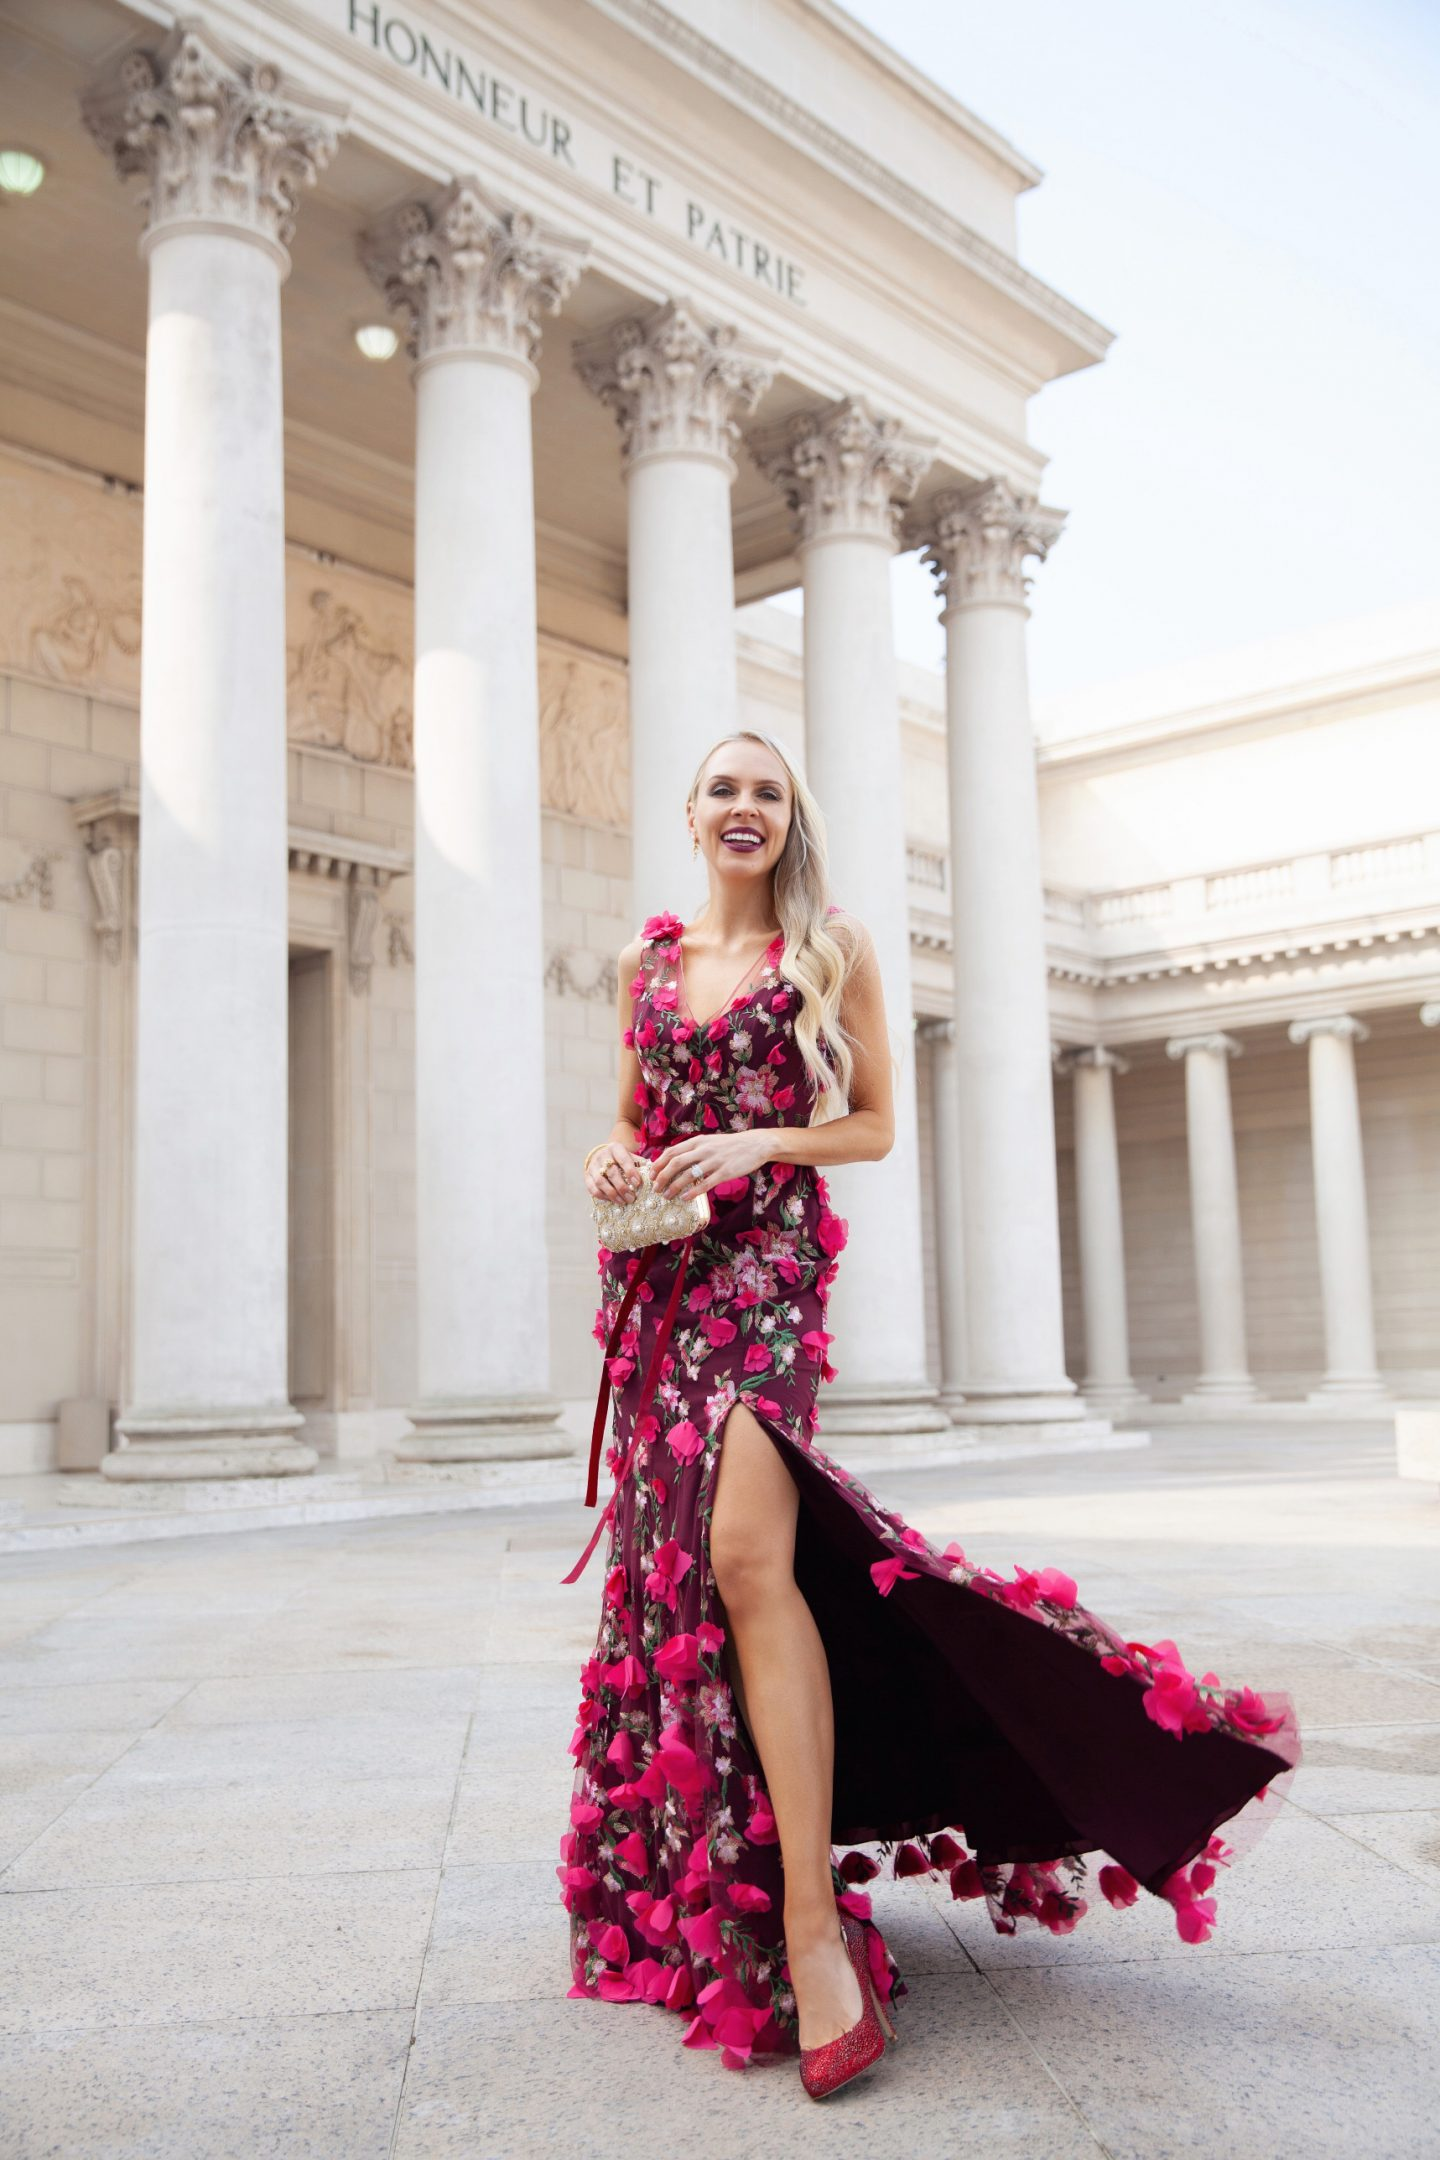 BHLDN holiday dress Vanda Dress Wine by Marchesa Notte styled by top San Francisco fashion blogger Lombard and Fifth as part of best holiday dress series